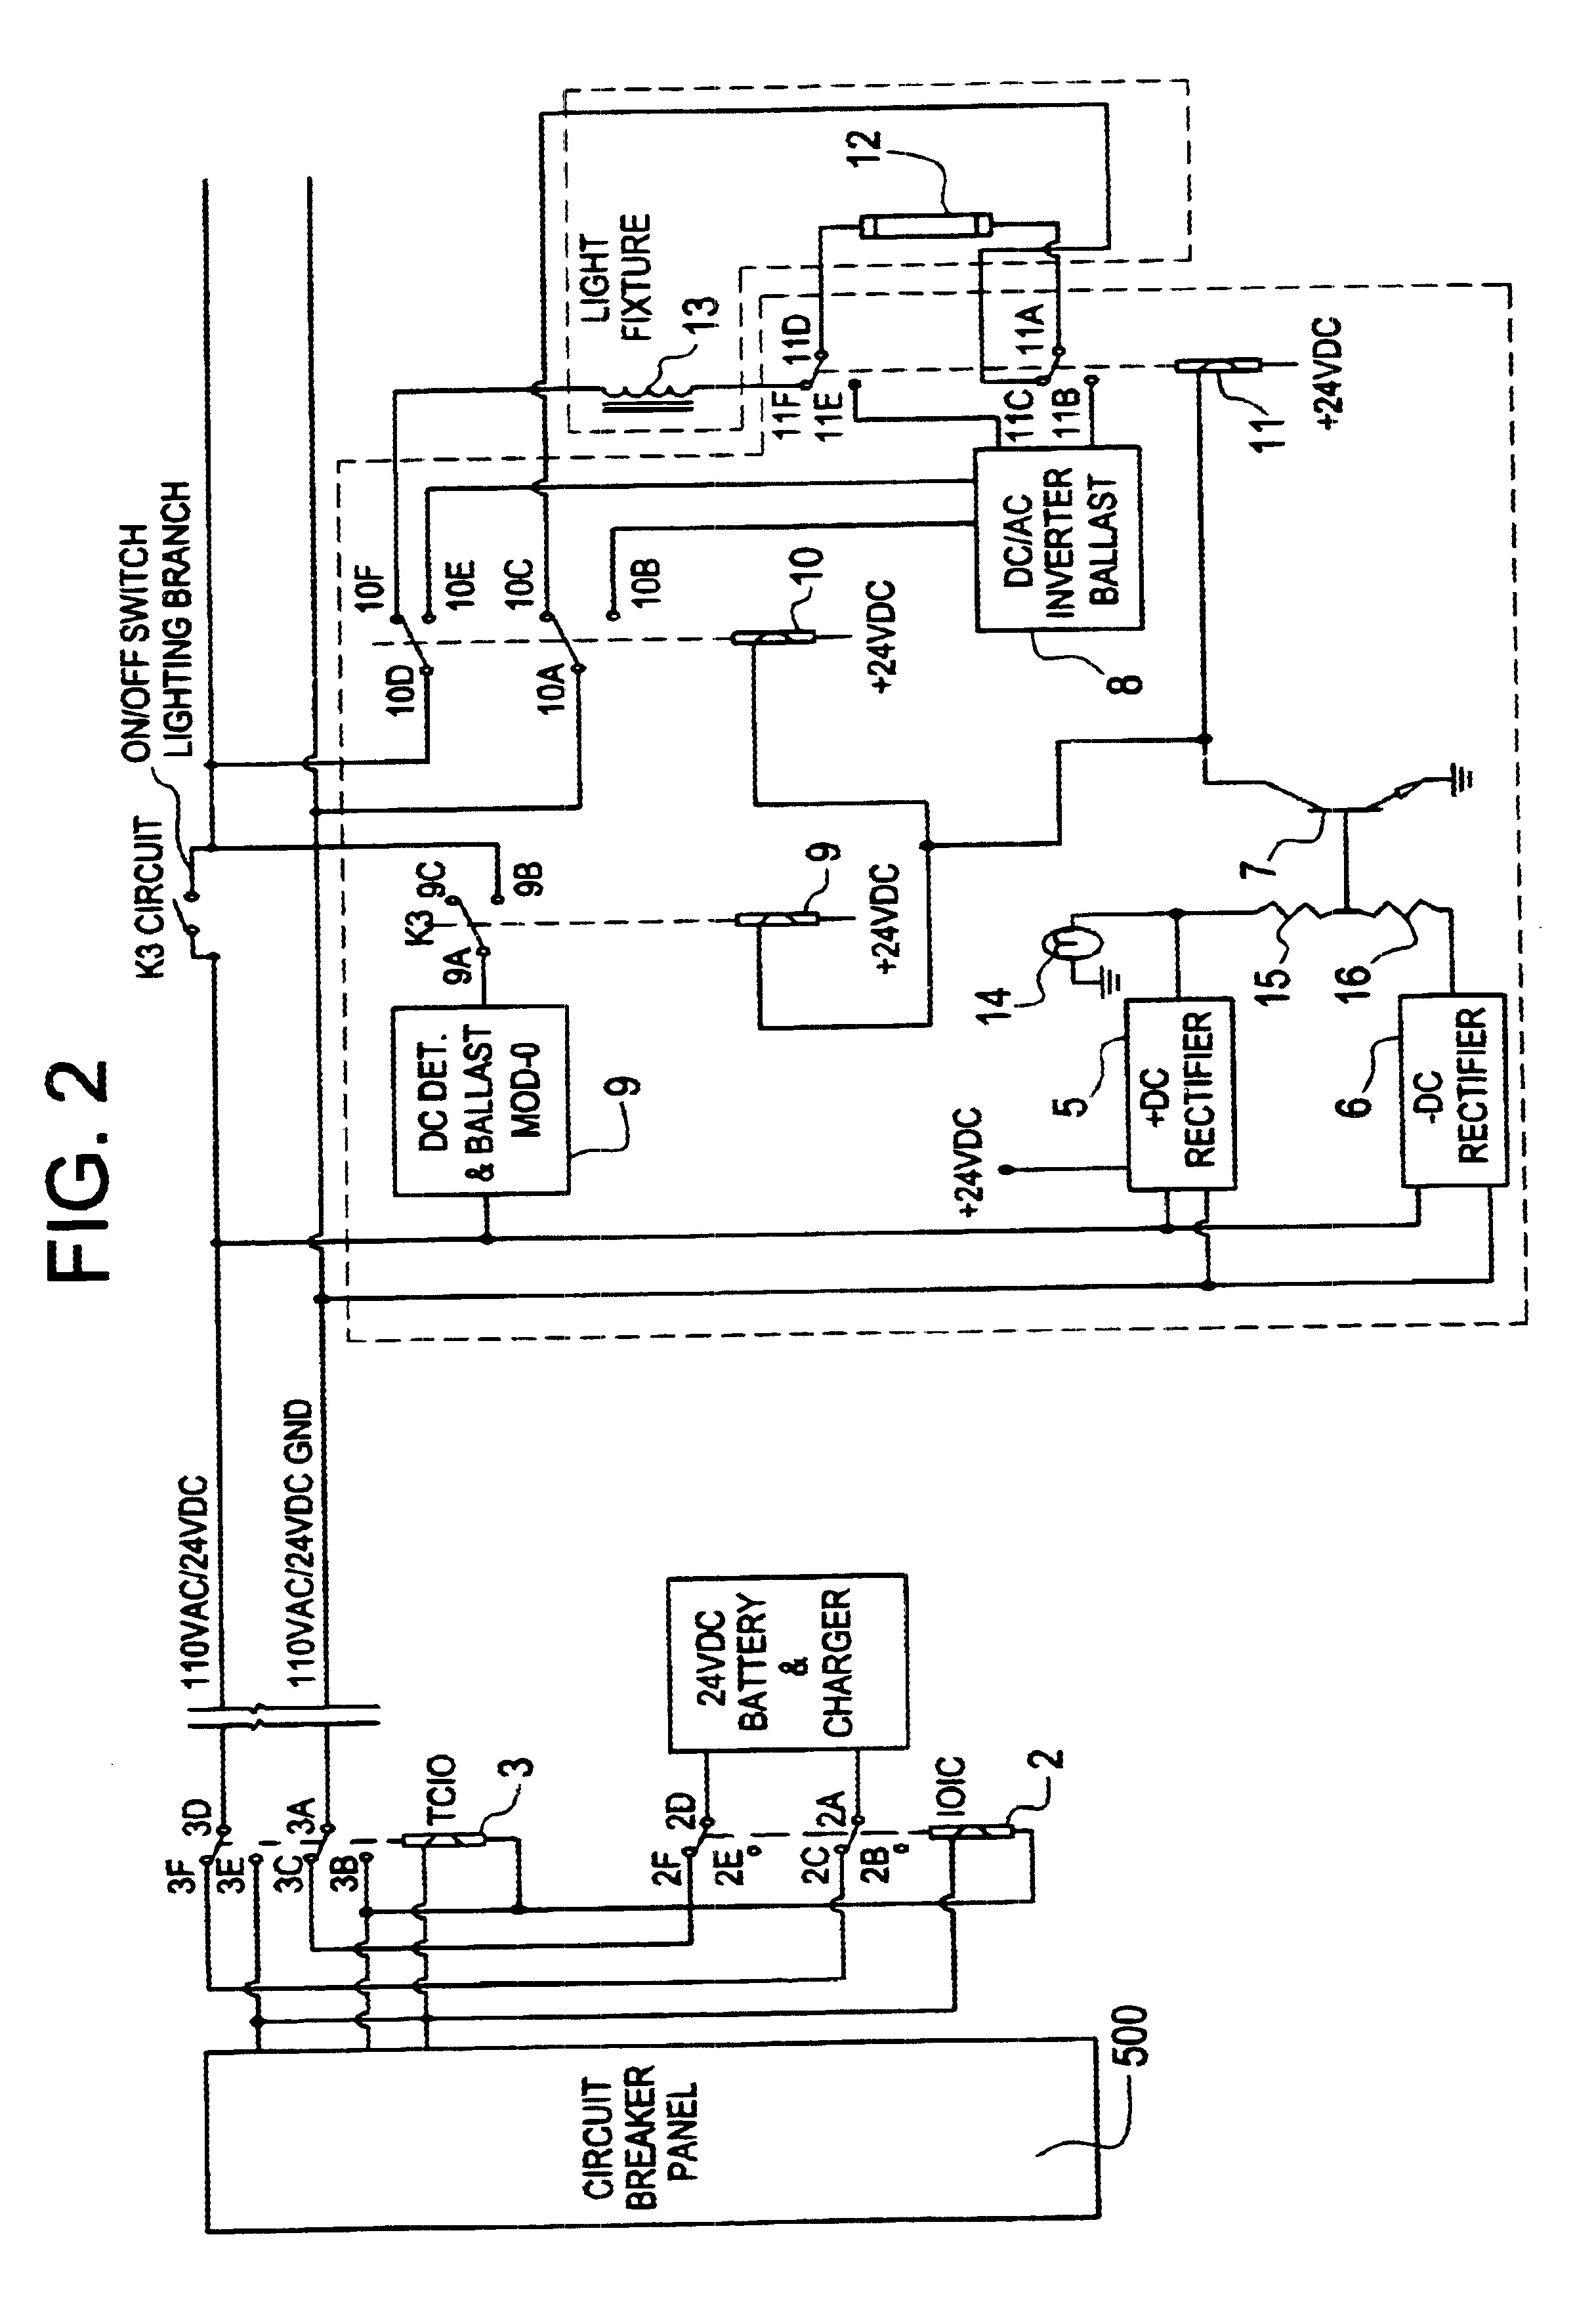 ballast wiring diagram wiring diagram schematic